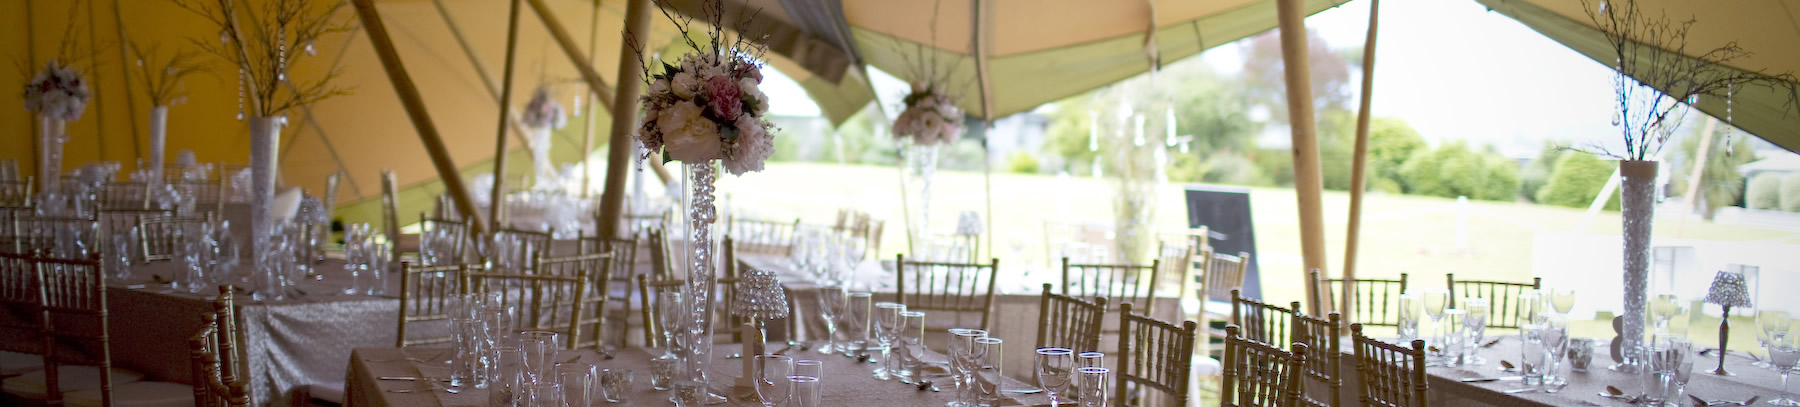 wedding planners for your special day